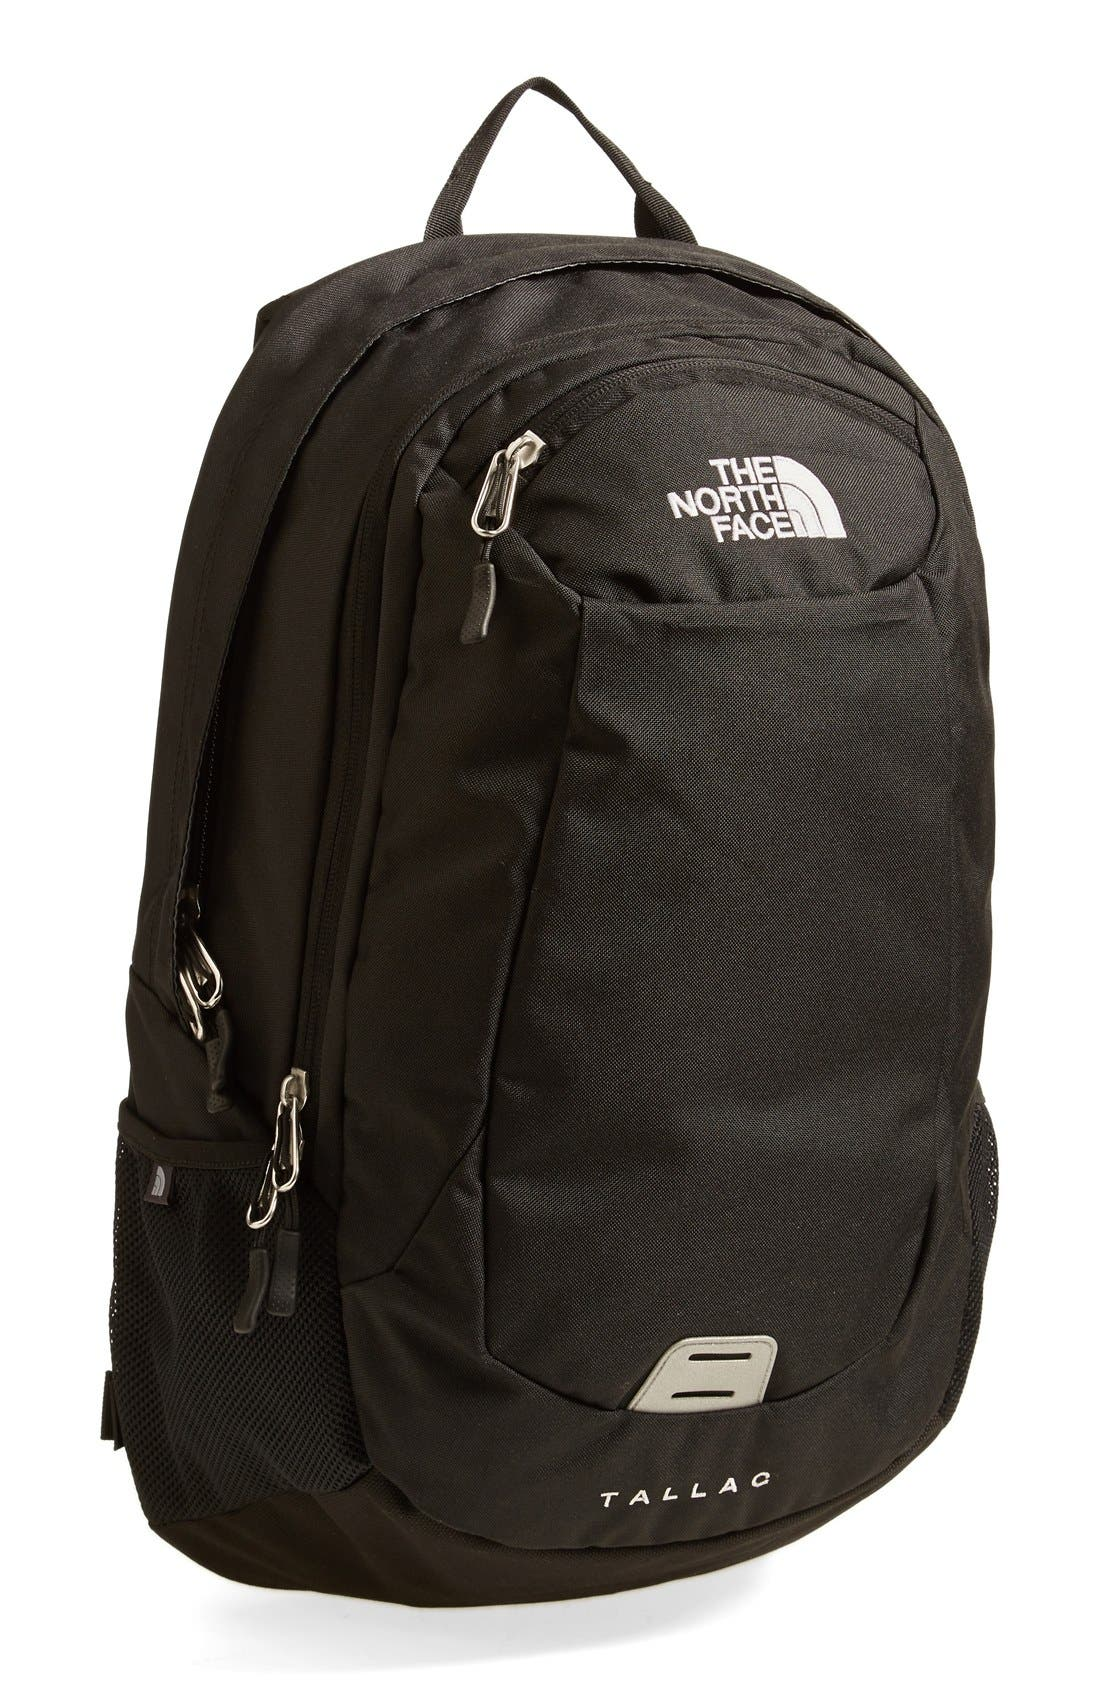 Main Image - The North Face 'Tallac' Backpack (Boys)